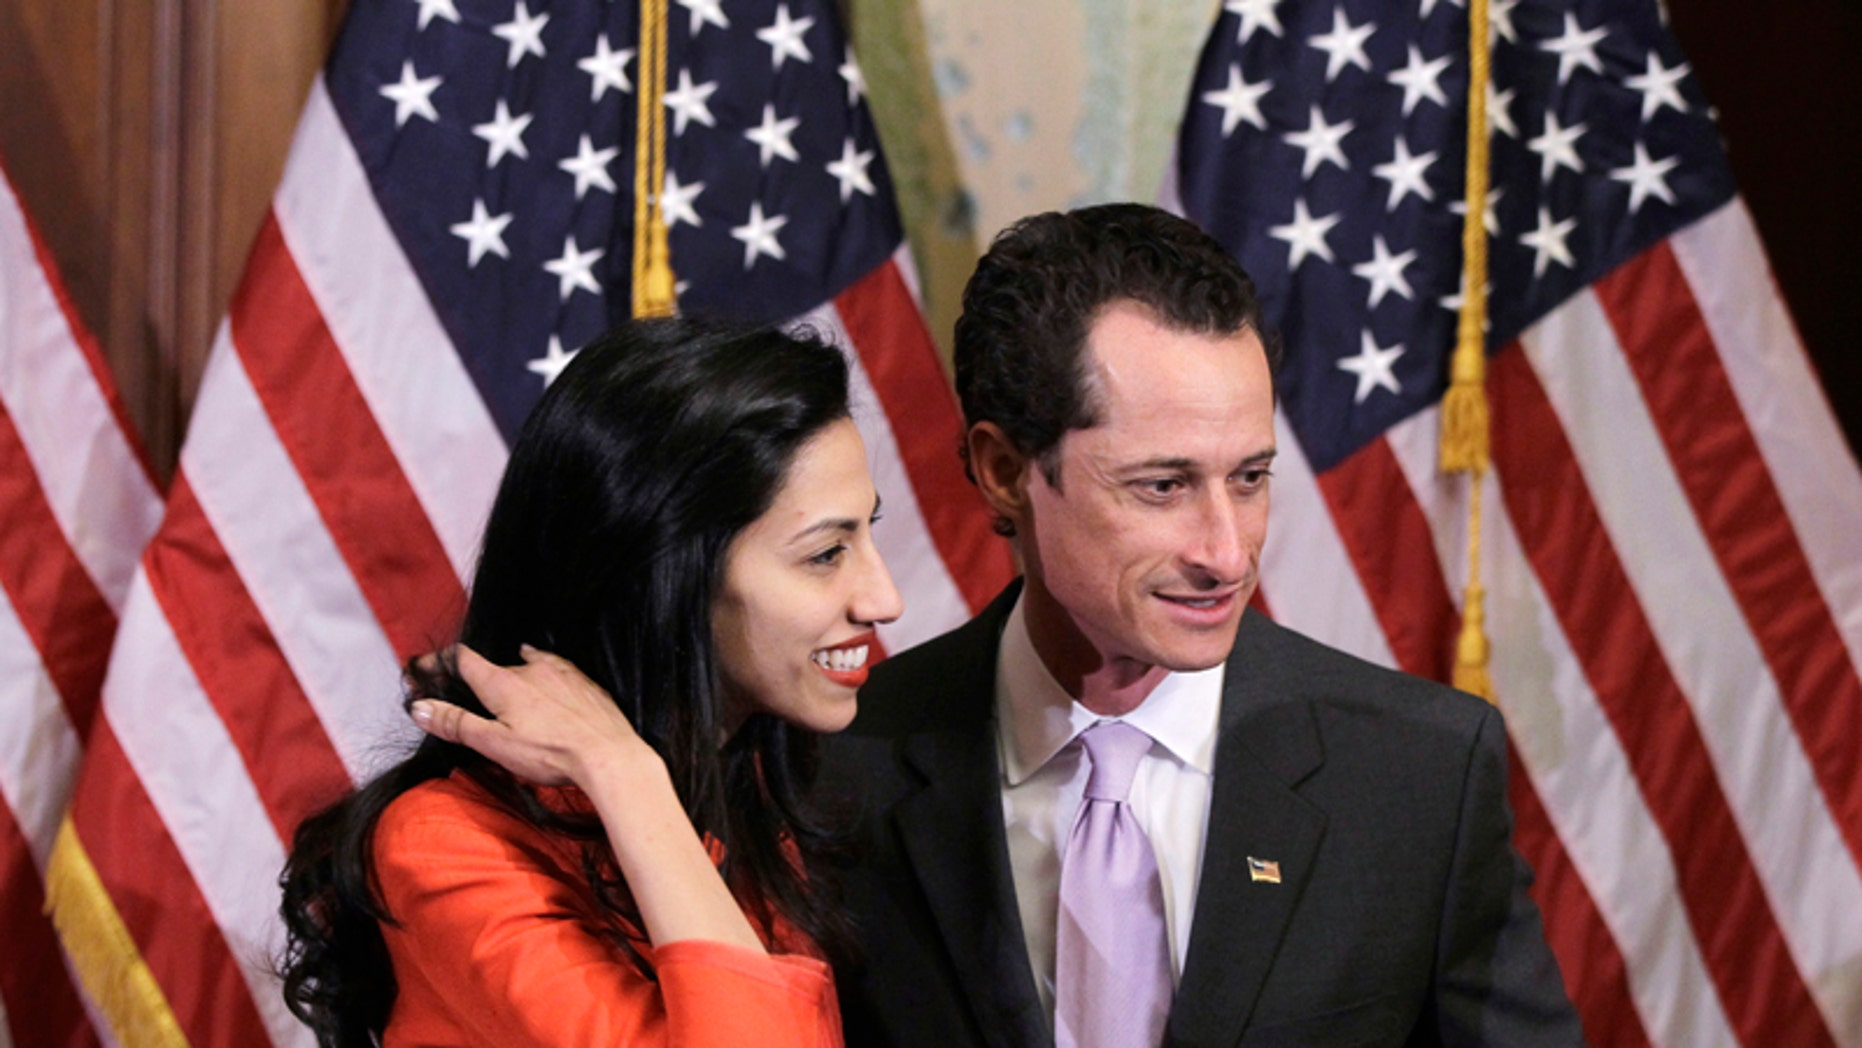 Jan. 5, 2011: Rep. Anthony Weiner, D-N.Y., and his wife, Huma Abedin, an aide to Secretary of State Hillary Clinton, are pictured after a ceremonial swearing in of the 112th Congress on Capitol Hill in Washington.